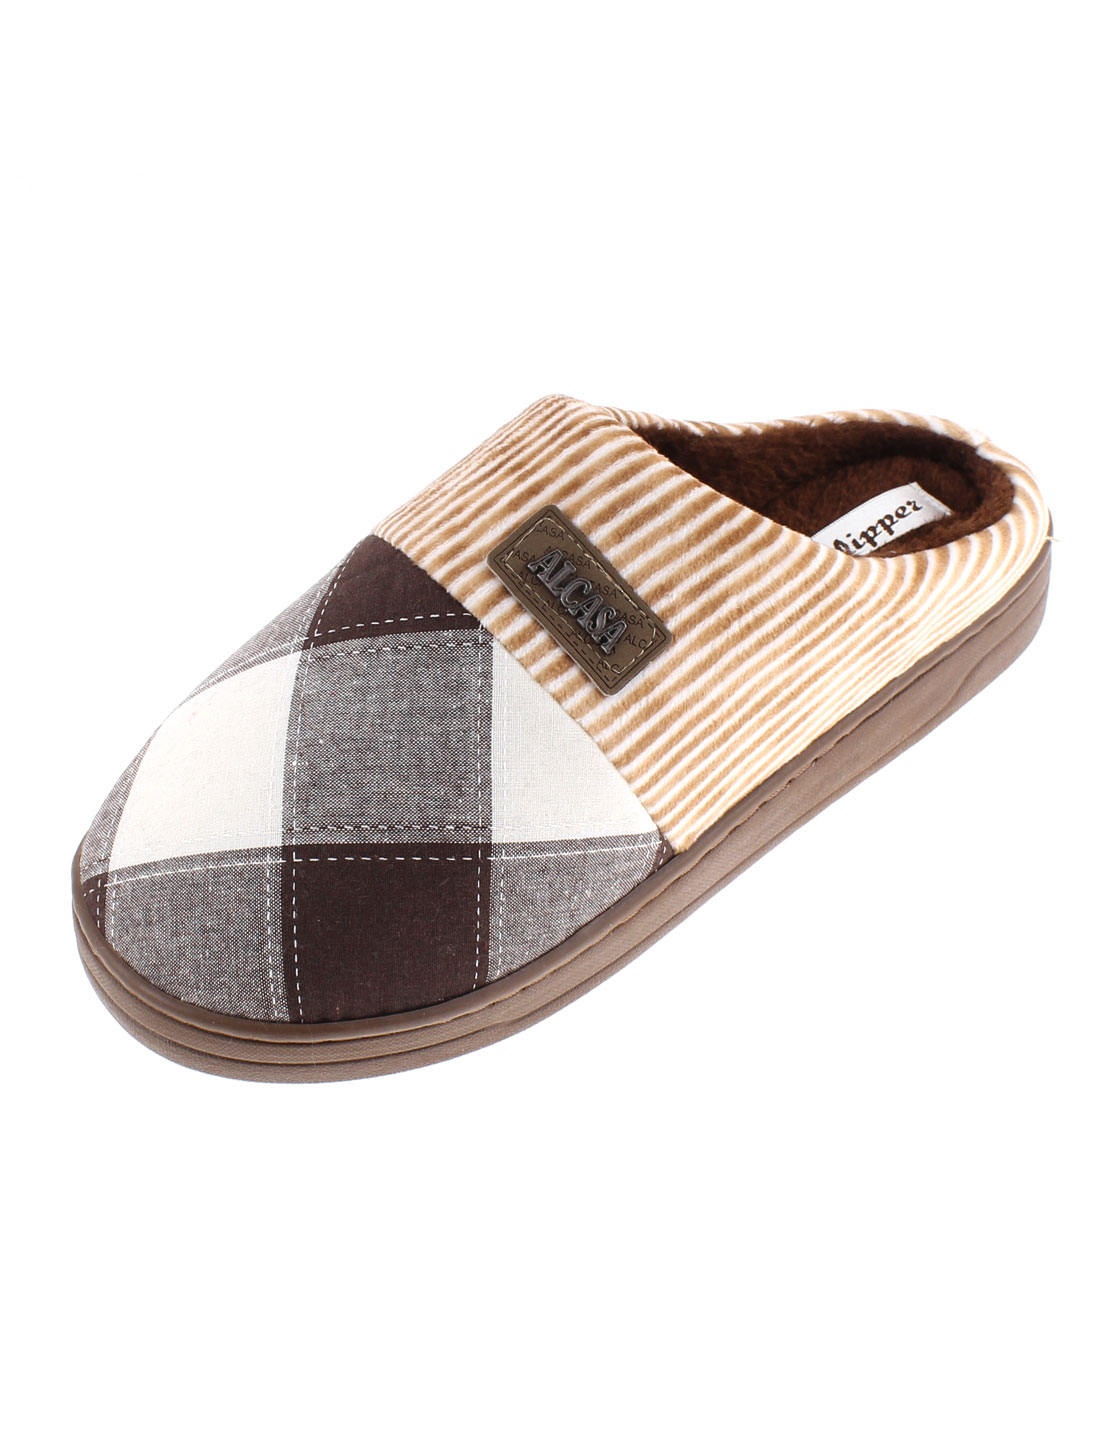 Women Grid Pattern Warmer Cotton Slippers Chocolate Color US 9.5